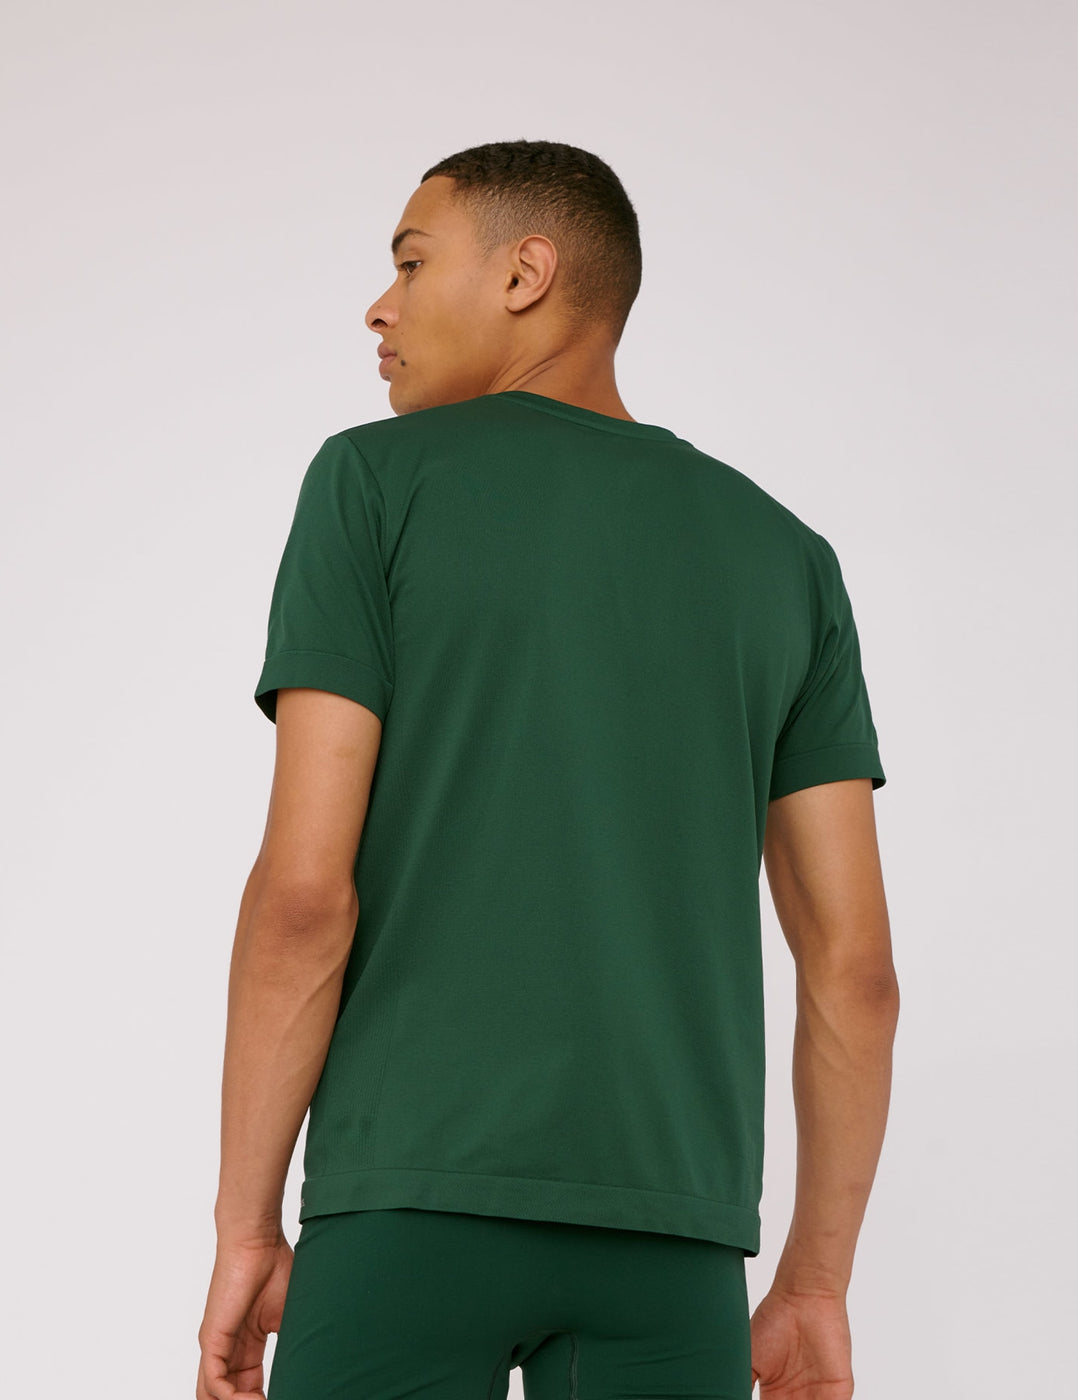 SilverTech™ Active T-Shirt